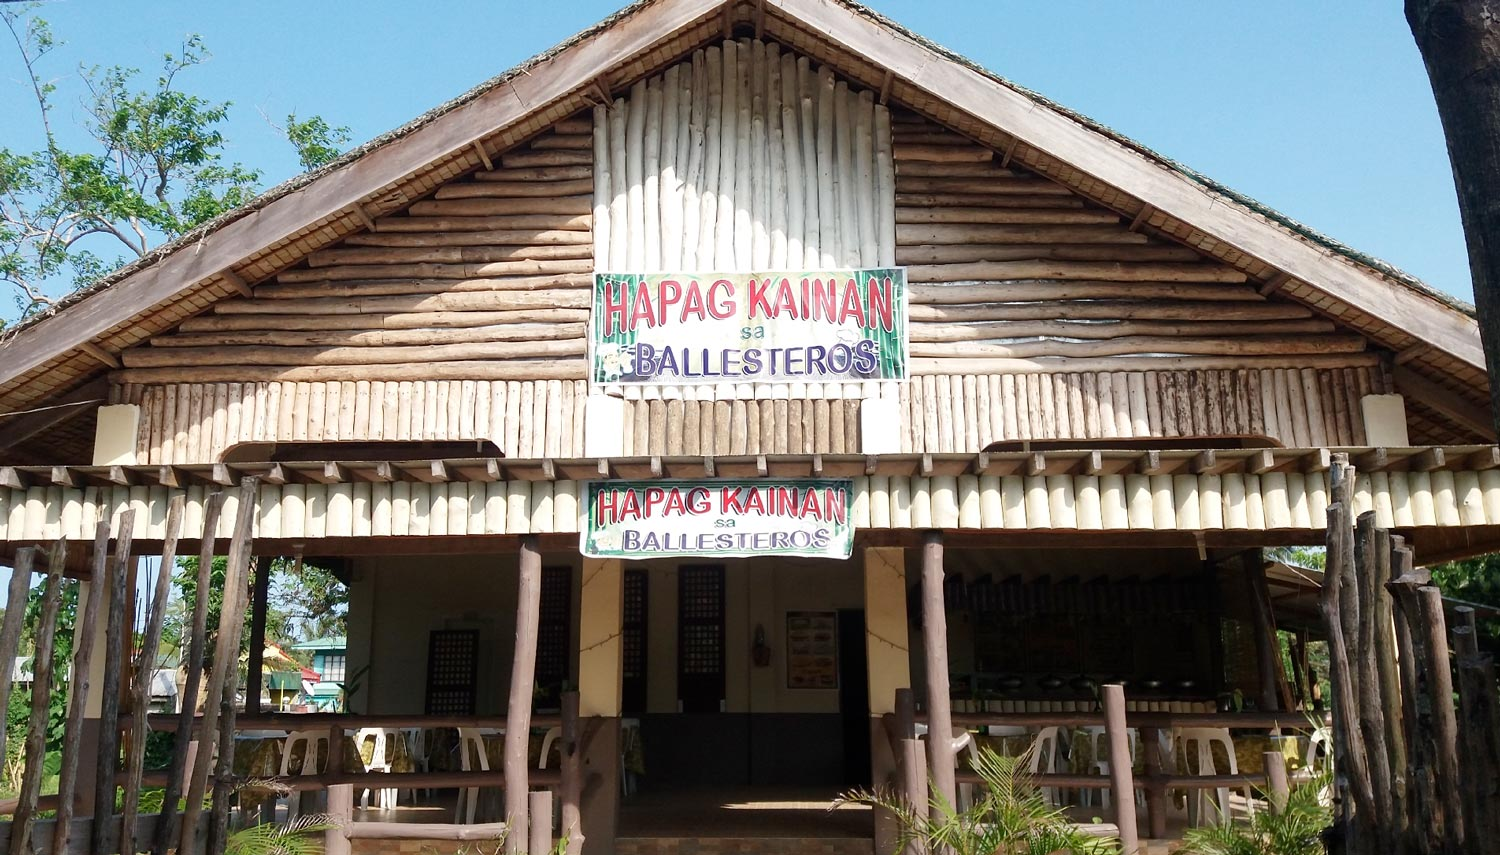 Hapag-Kainan sa Ballesteros is a place to see and be seen in Ballesteros, Cagayan. (Photo by Elsie Pablo Fernandez)